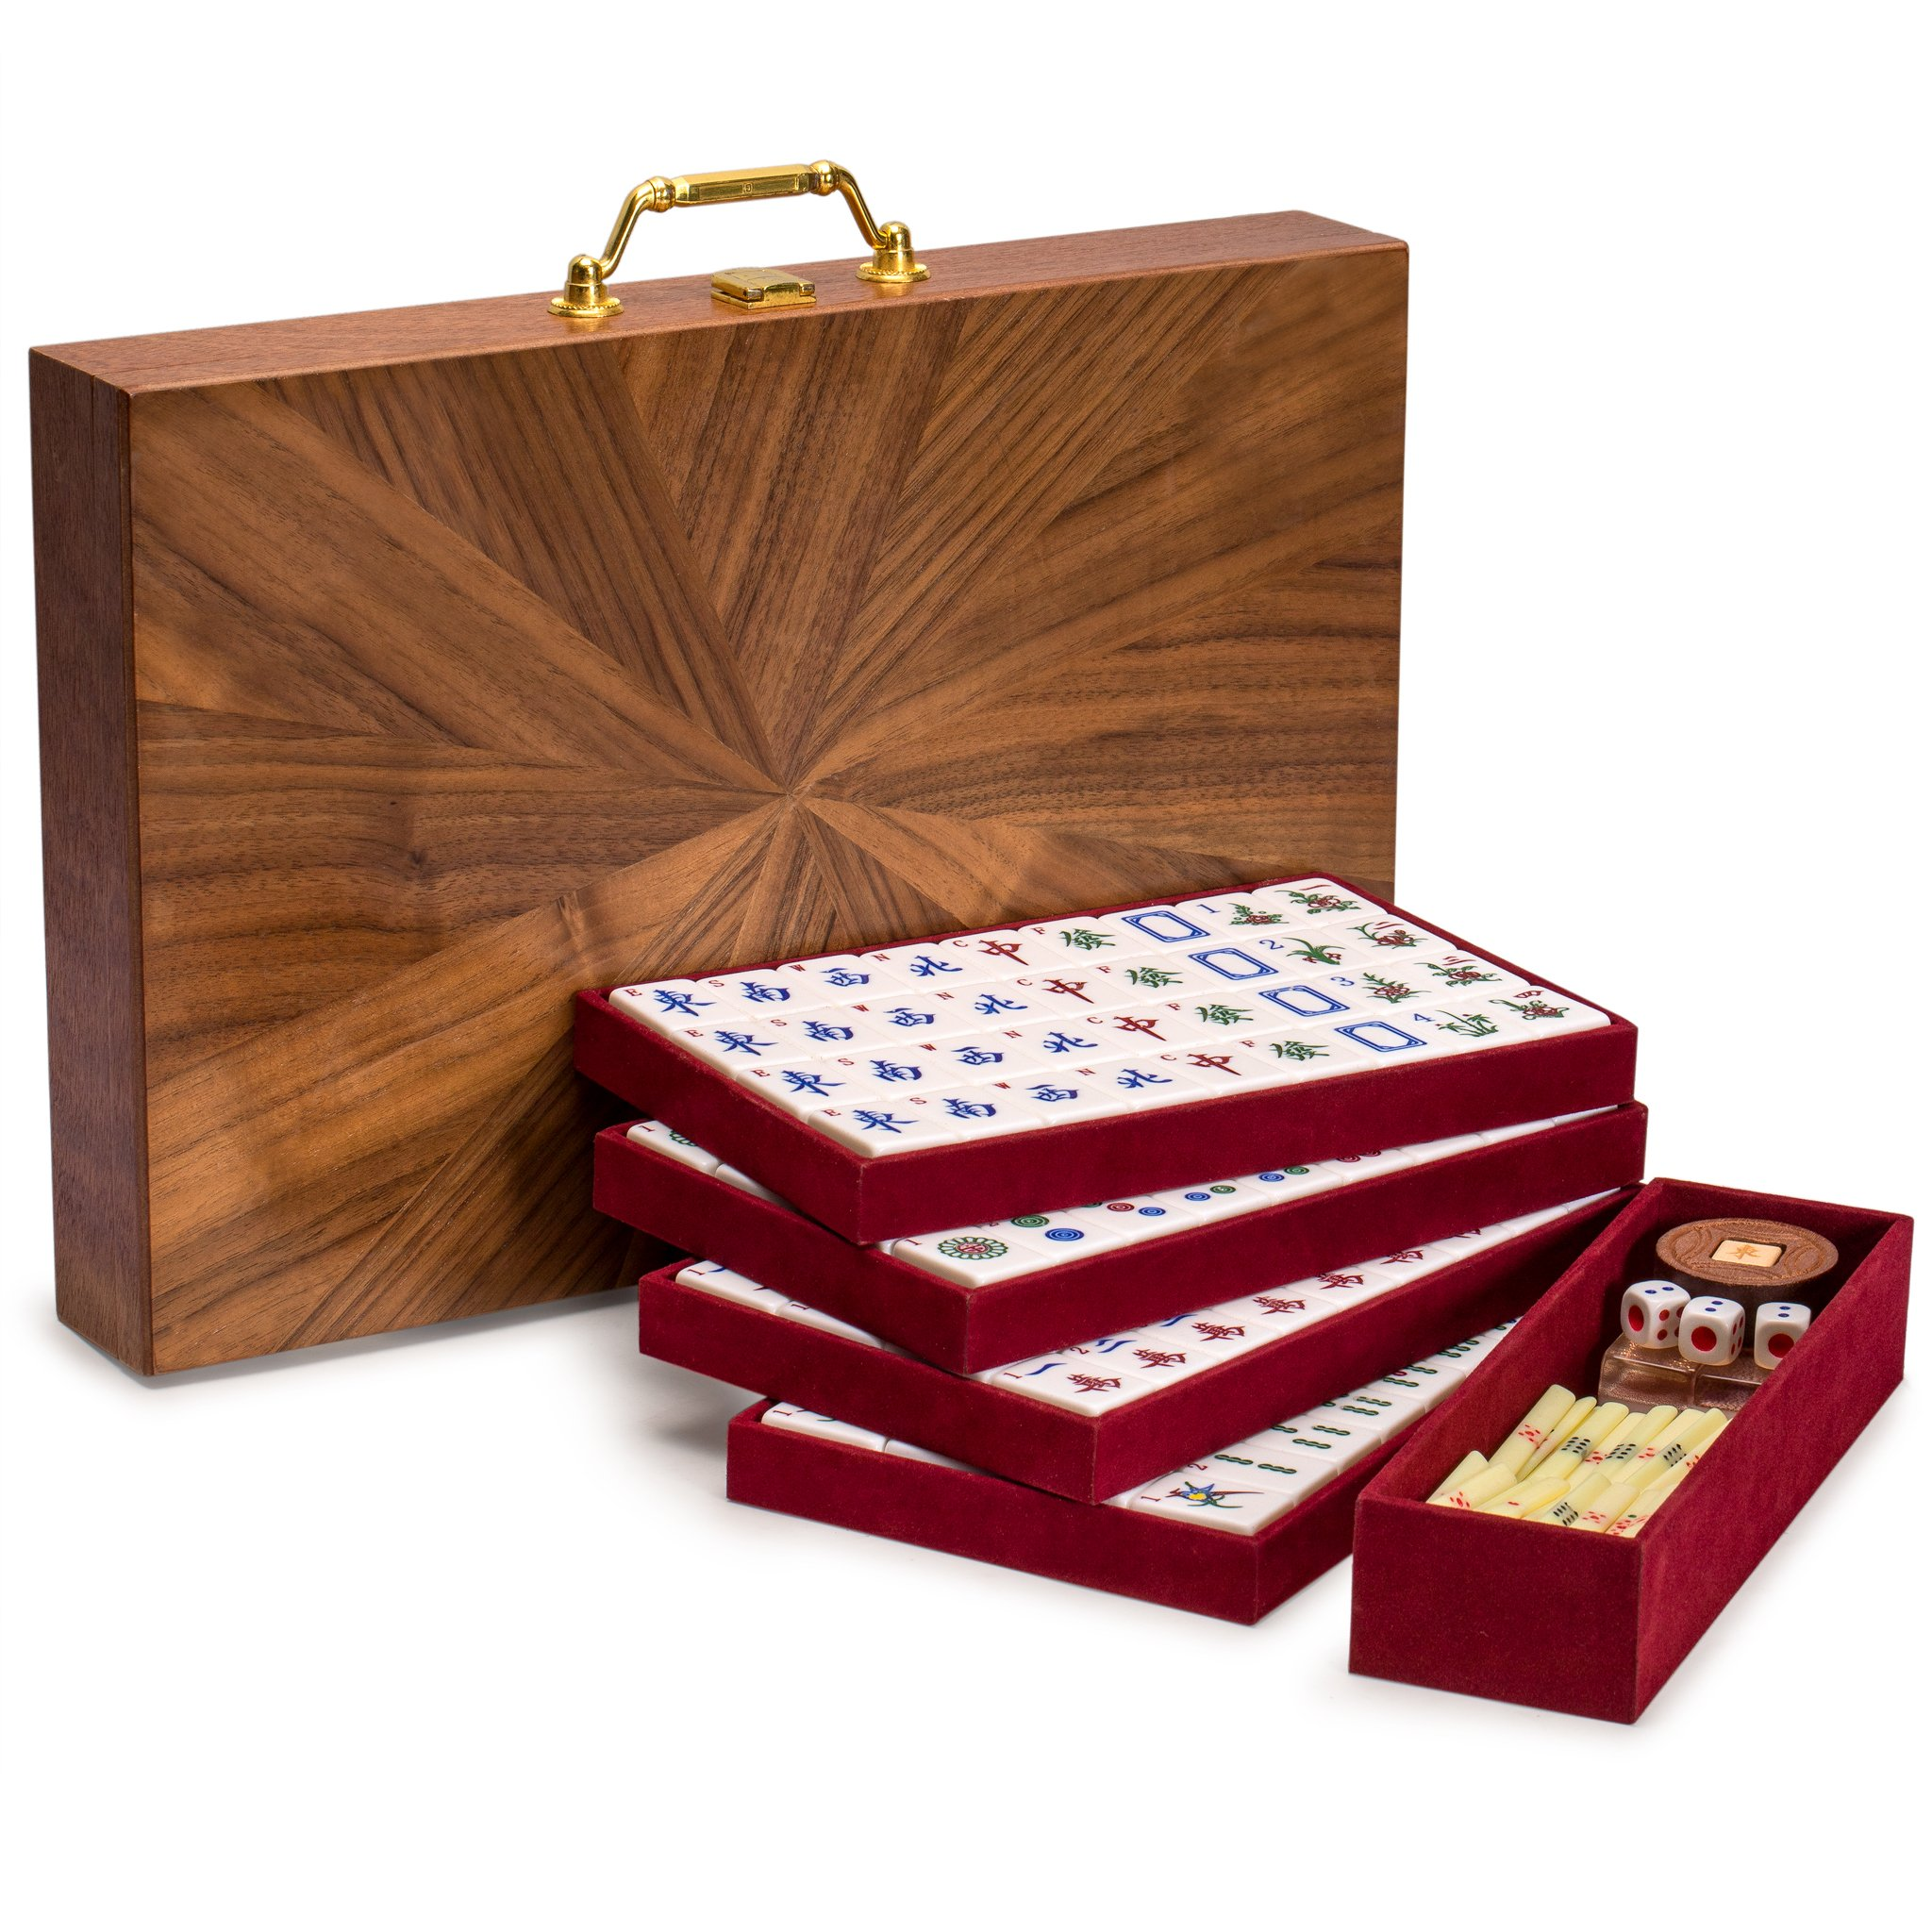 Yellow Mountain Imports Chinese Mahjong Set, Champagne Gold - with Wood Veneer Case - Medium Size Tiles: 1.3 x 1 x 0.7 inches (34mm x 25mm x 19mm) - for Chinese Style Gameplay Only by Yellow Mountain Imports (Image #4)